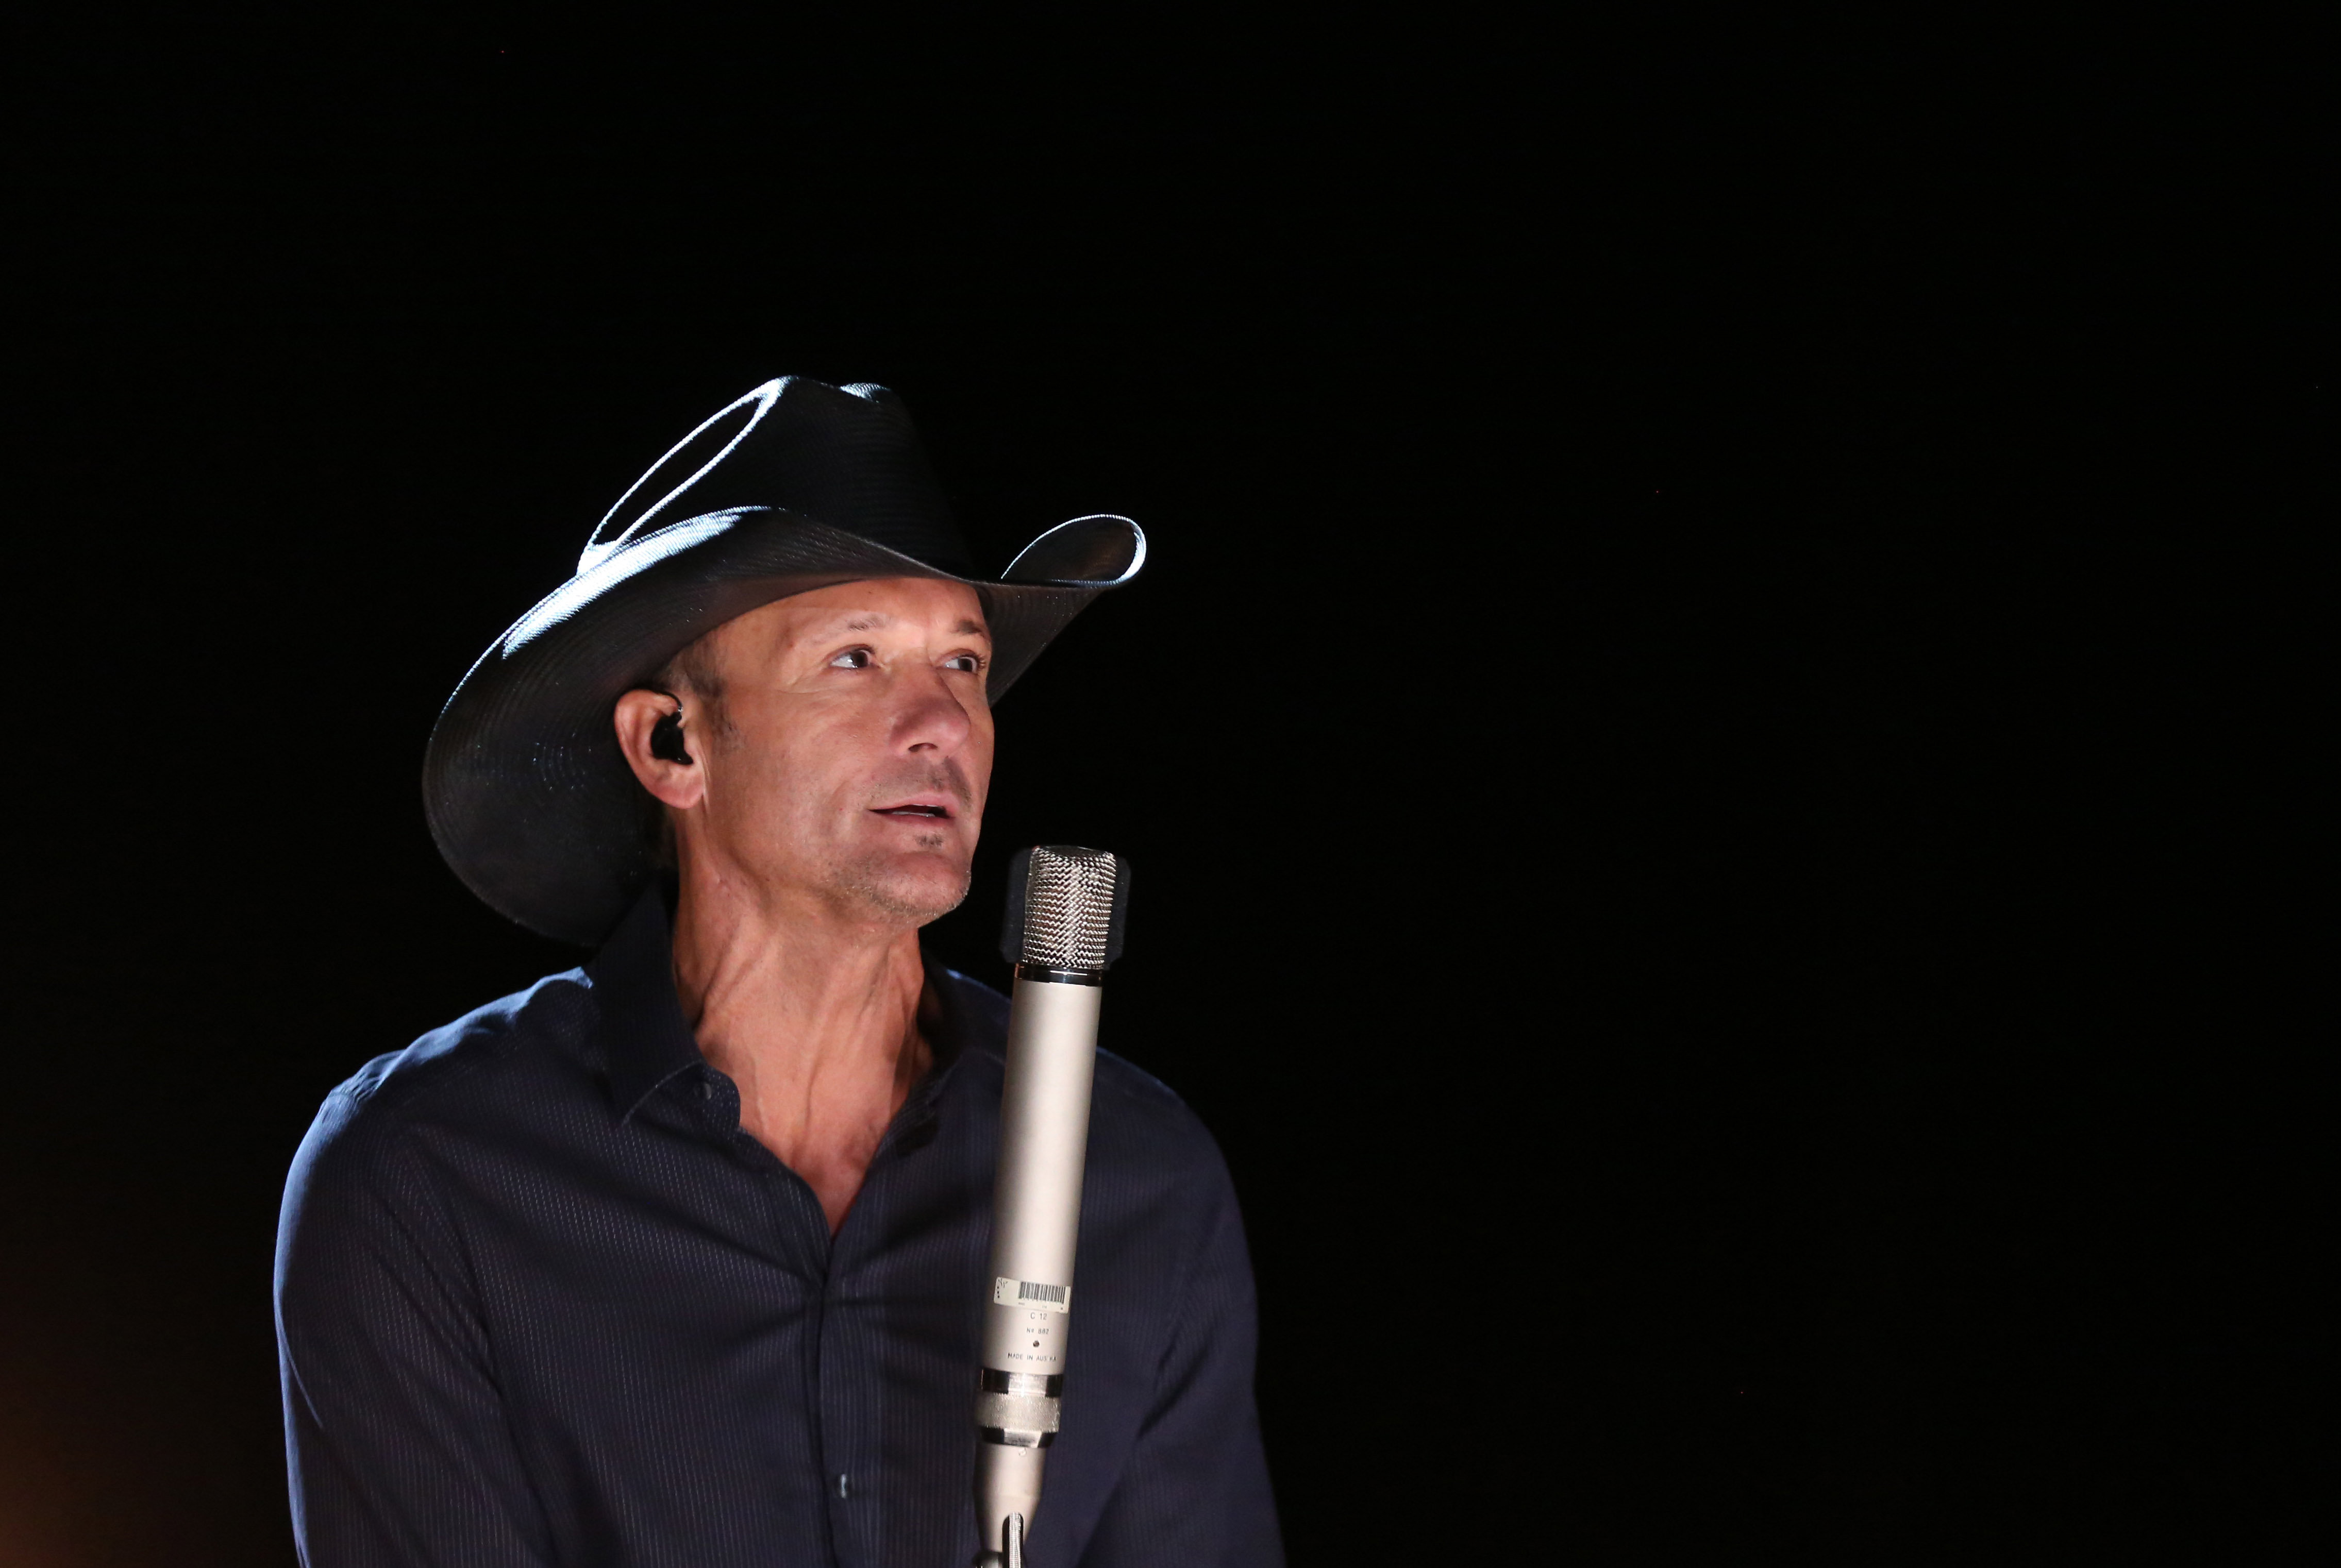 Tim McGraw performs during rehearsals for the 87th Academy Awards in Los Angeles, Feb. 20, 2015.